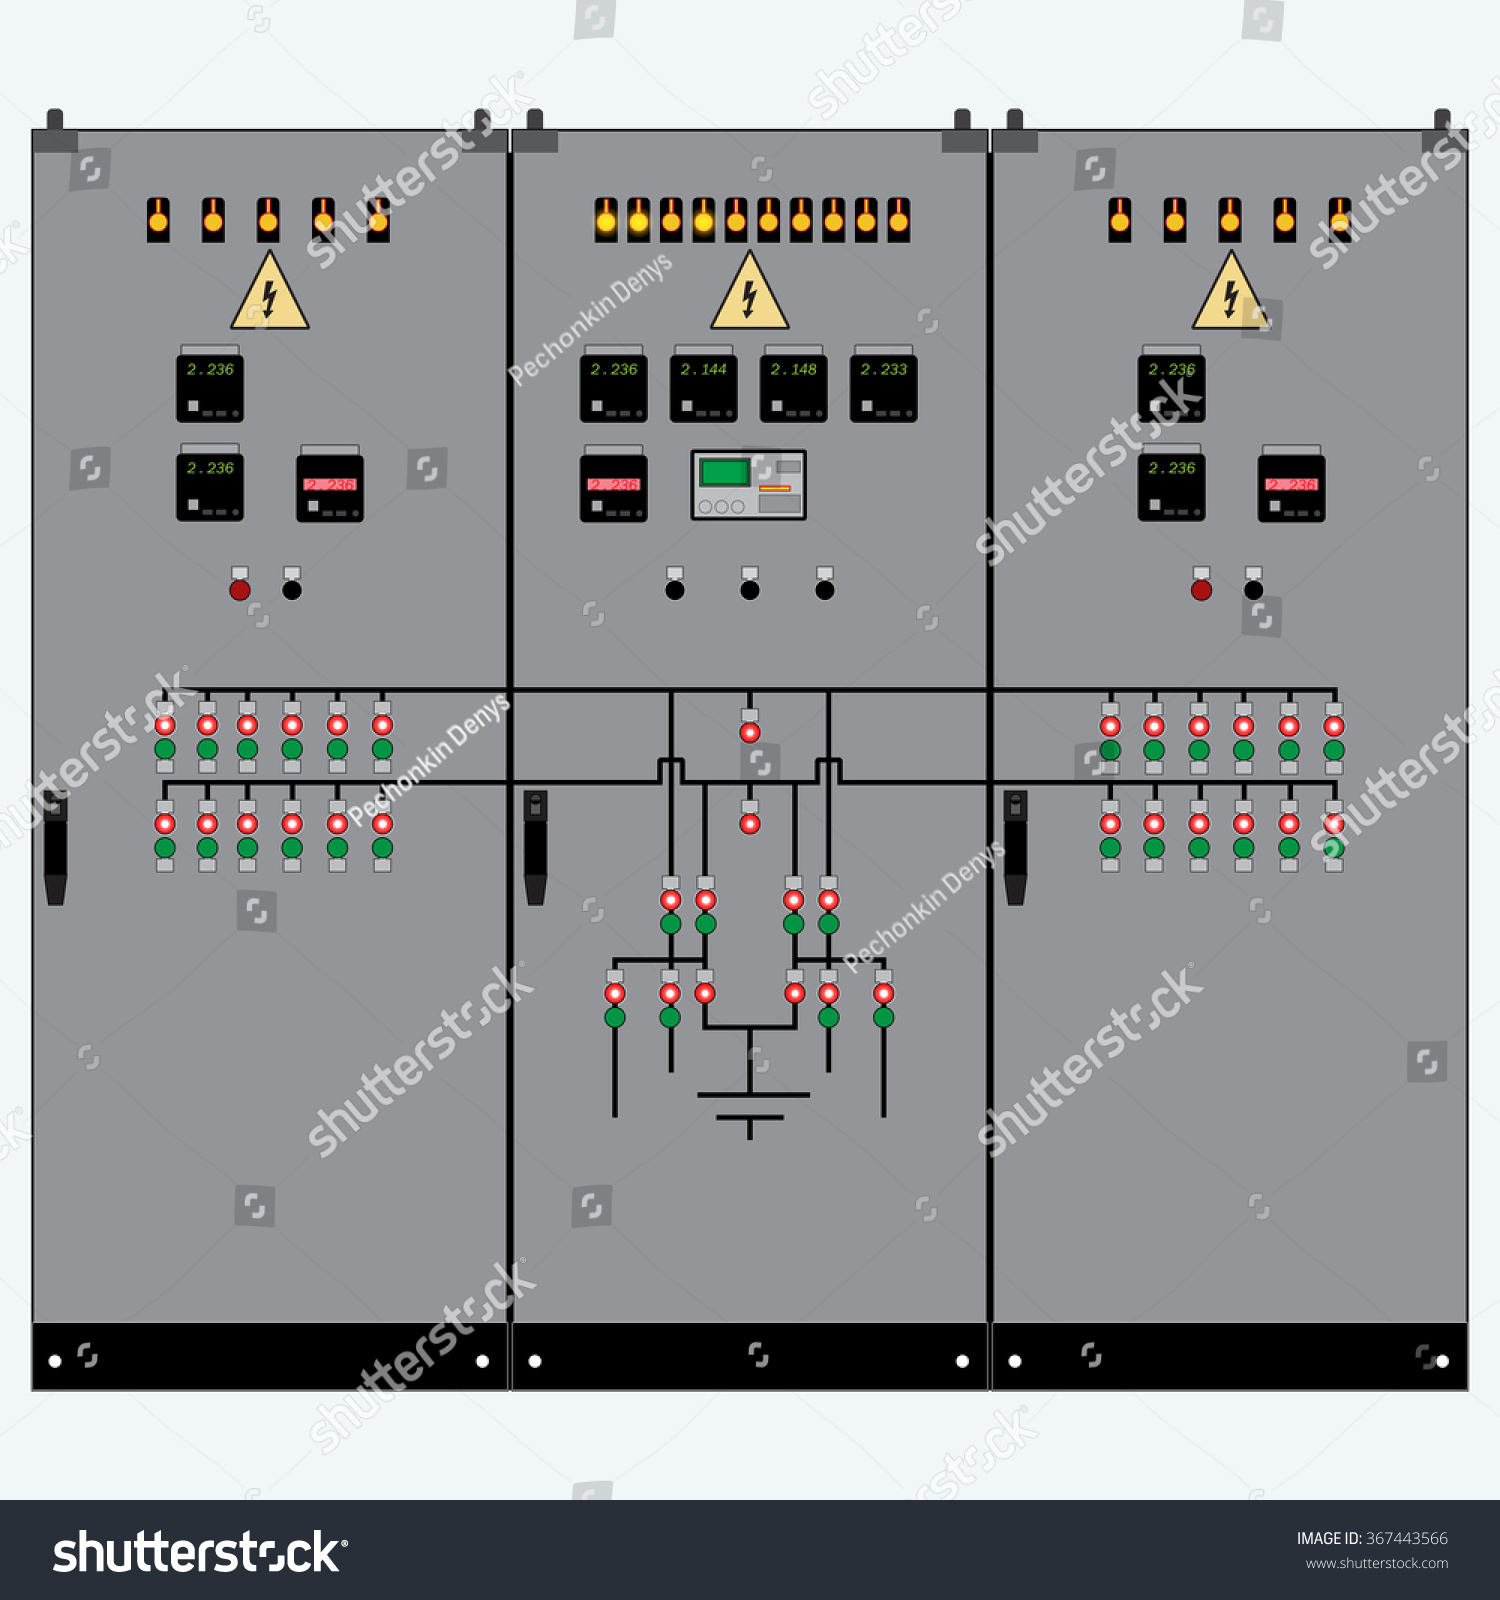 Picture Electrical Panel Electric Meter Circuit Stock Vector Of The And Breakershigh Voltage Transformer